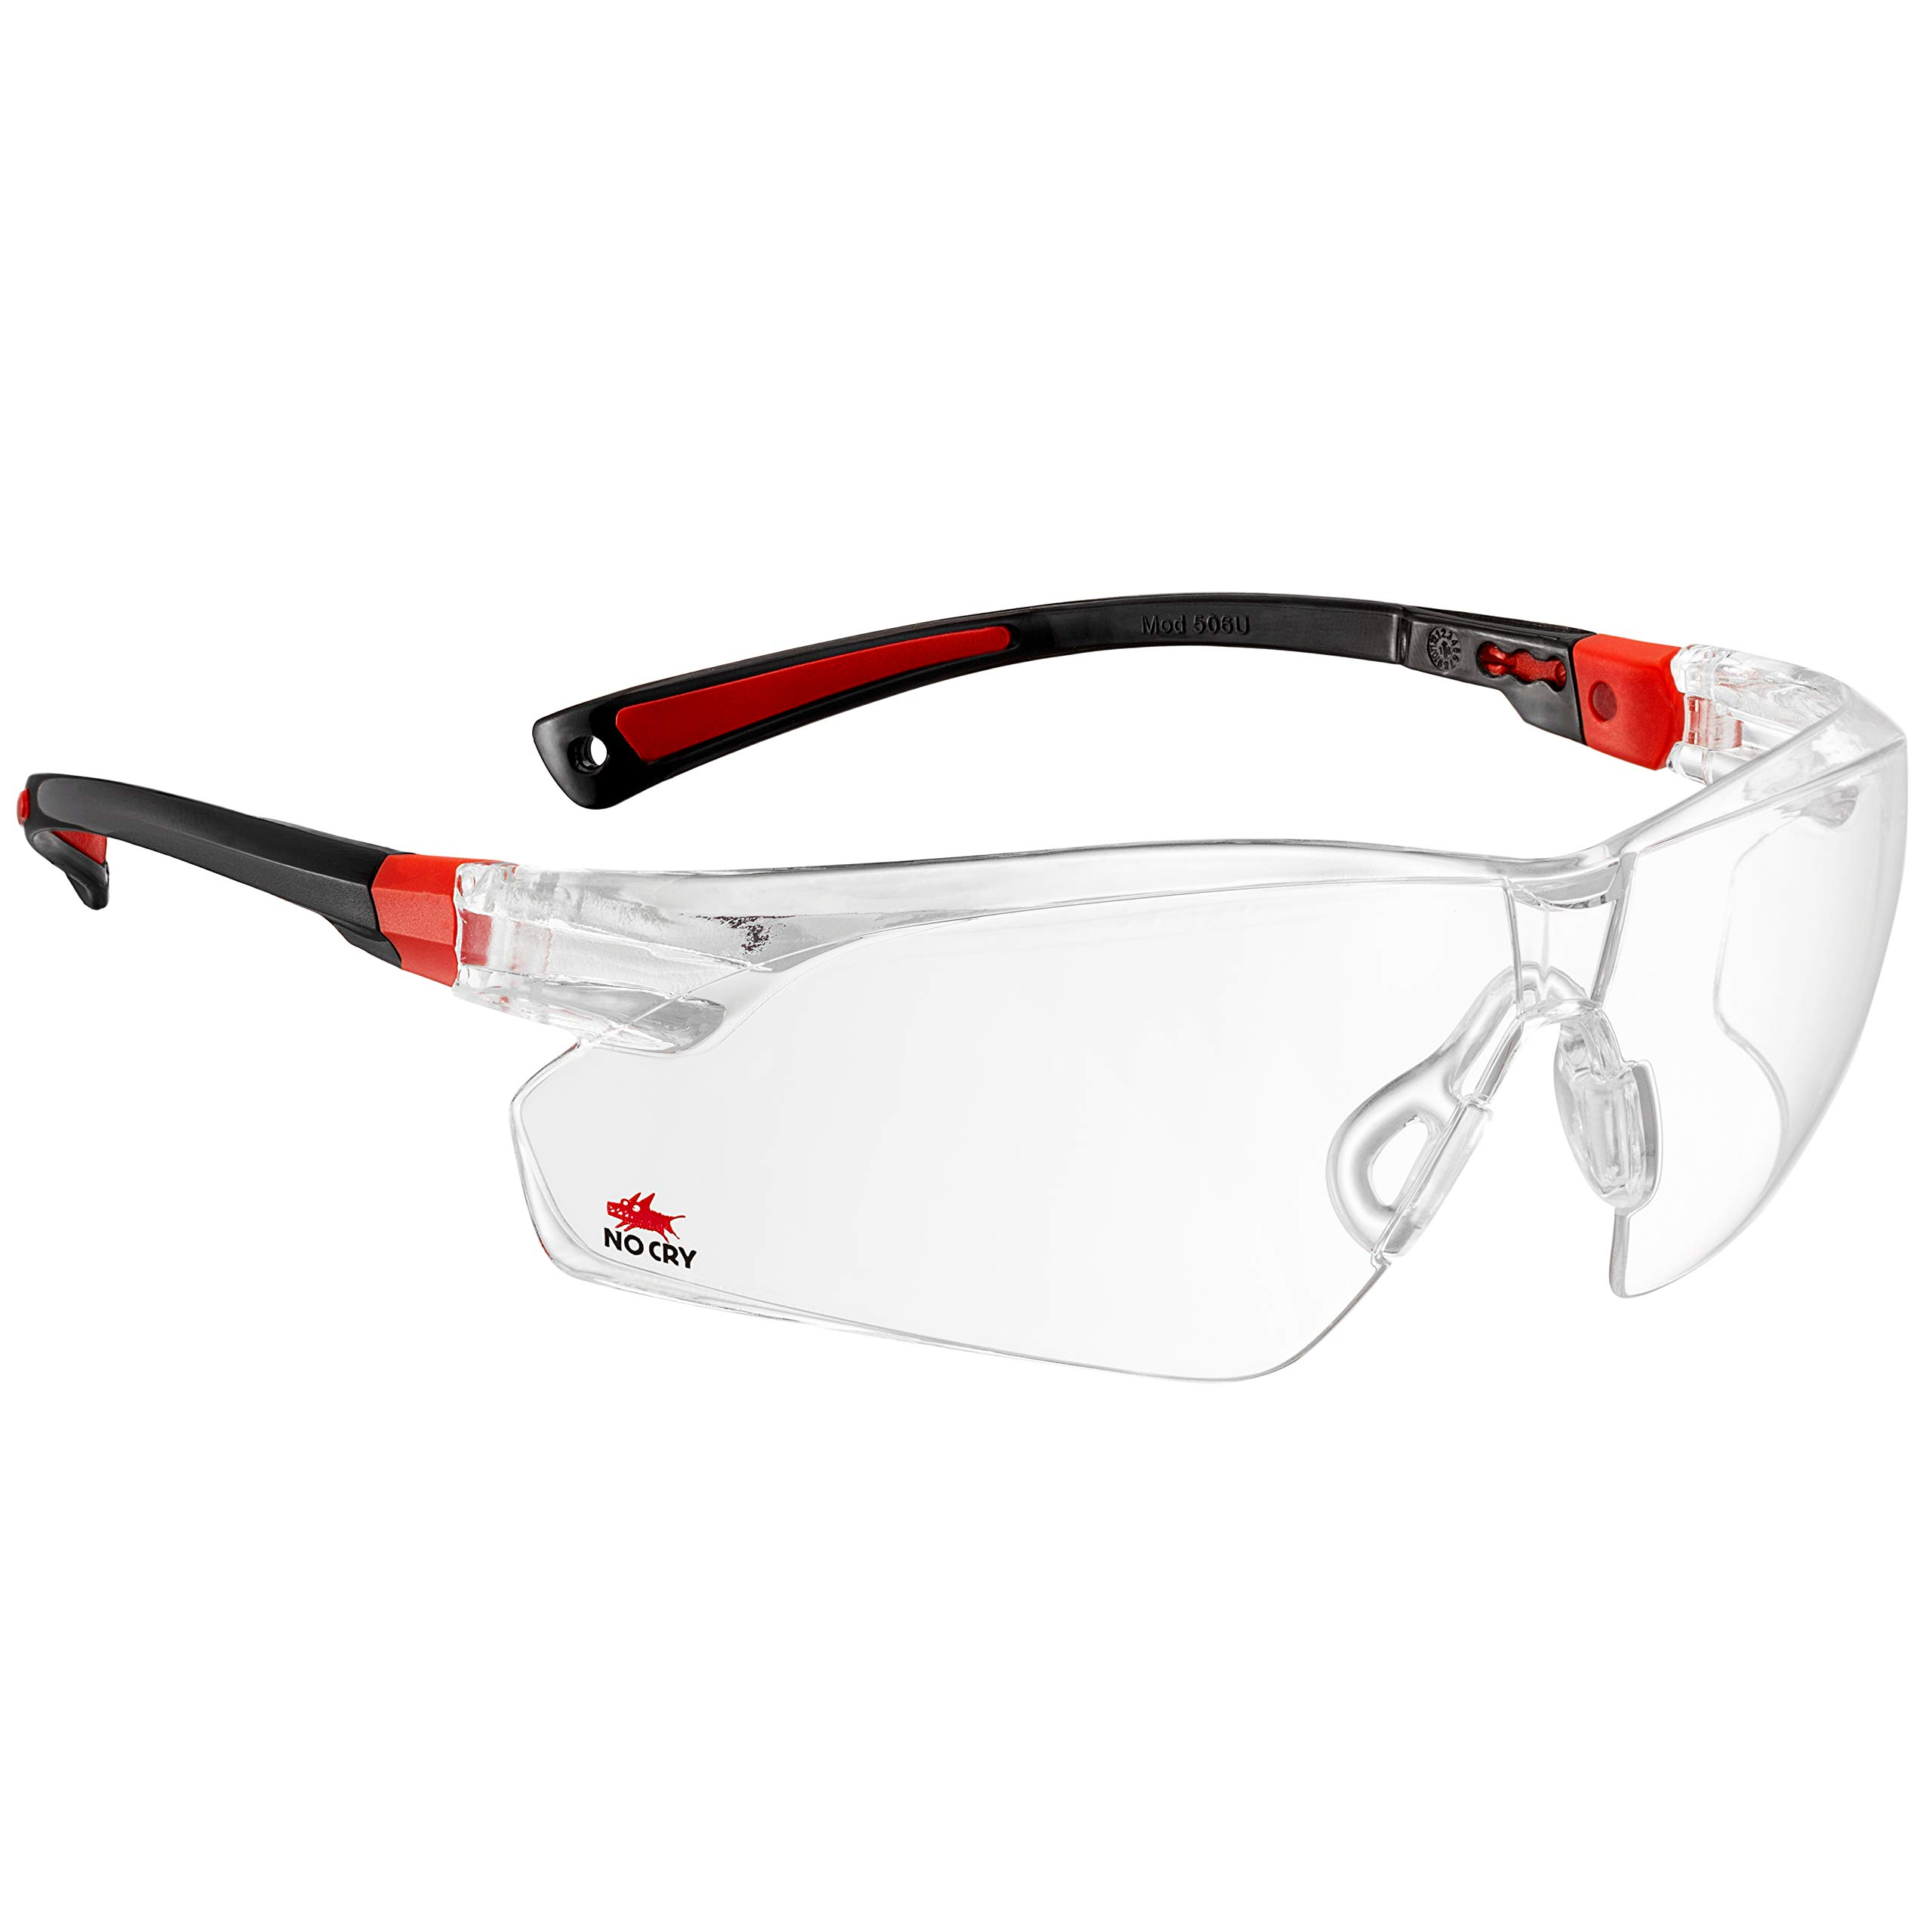 NoCry Safety Glasses with Clear Anti Fog Scratch Resistant Wrap-Around Lenses and Non-Slip Grips, UV Protection. Adjustable, Black & Red Frames by NoCry